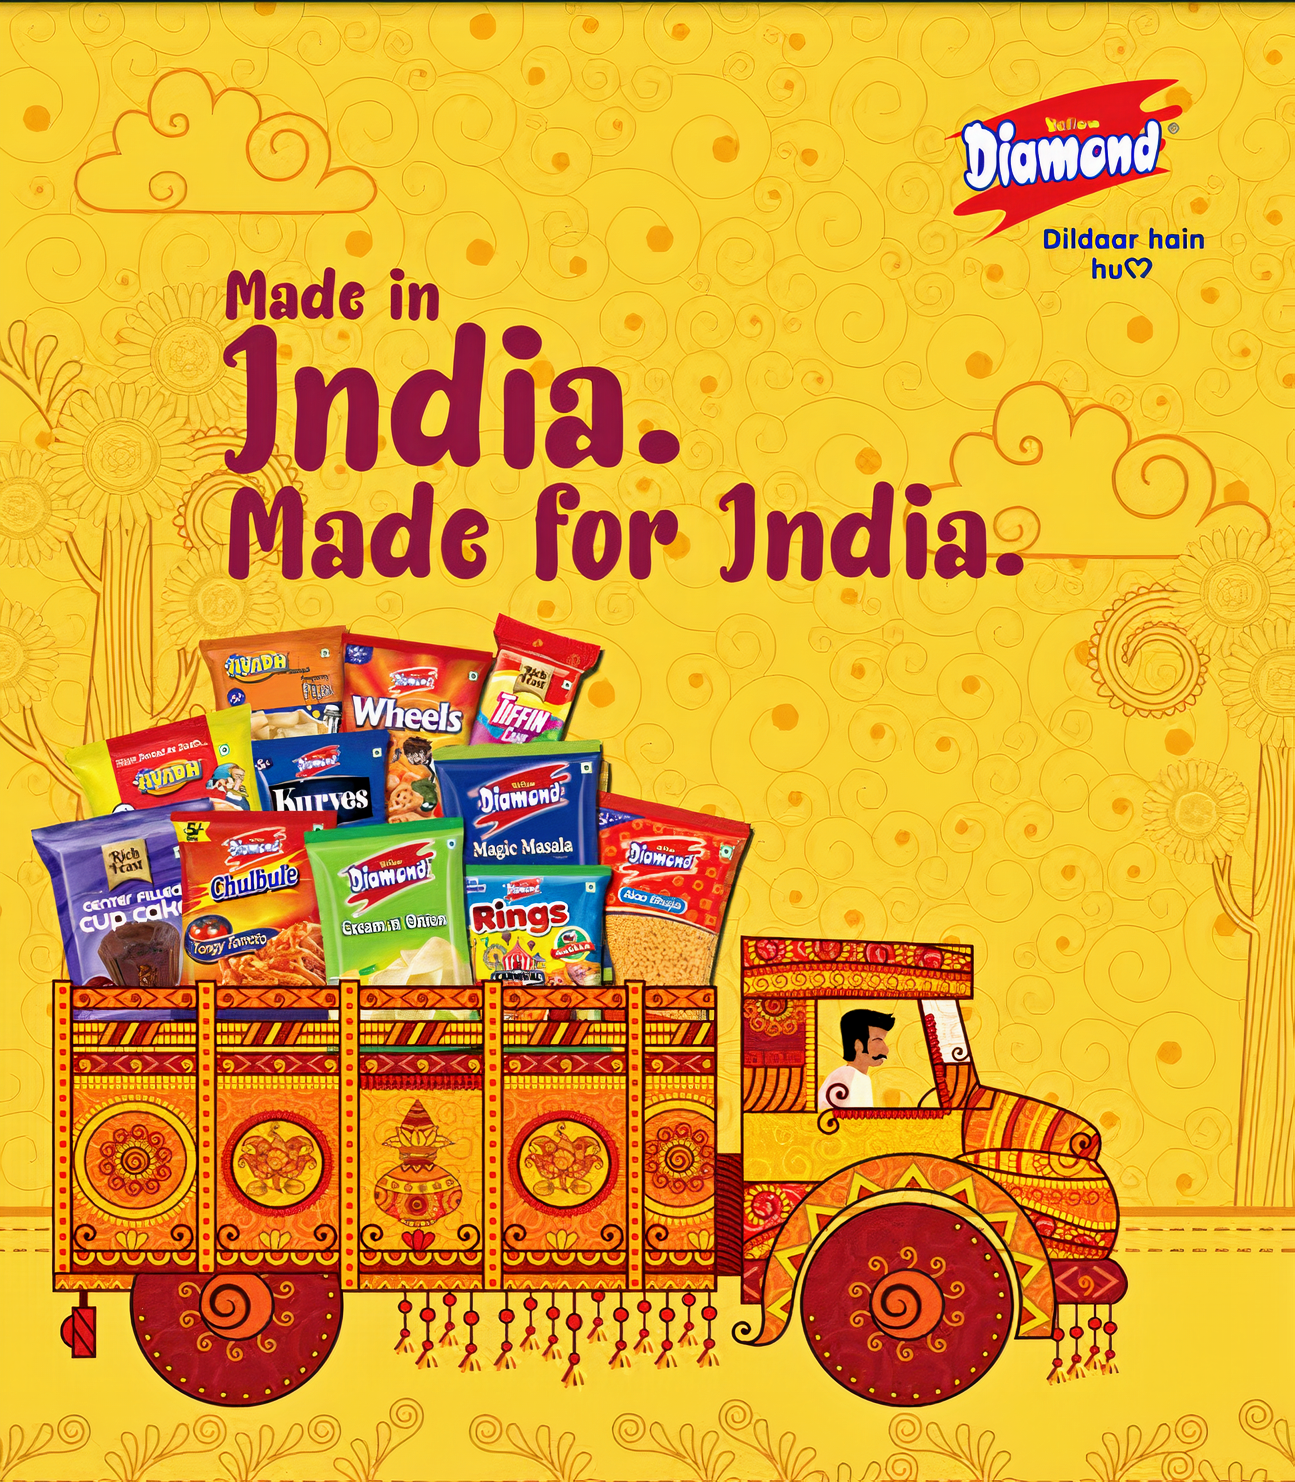 Prataap Snacks